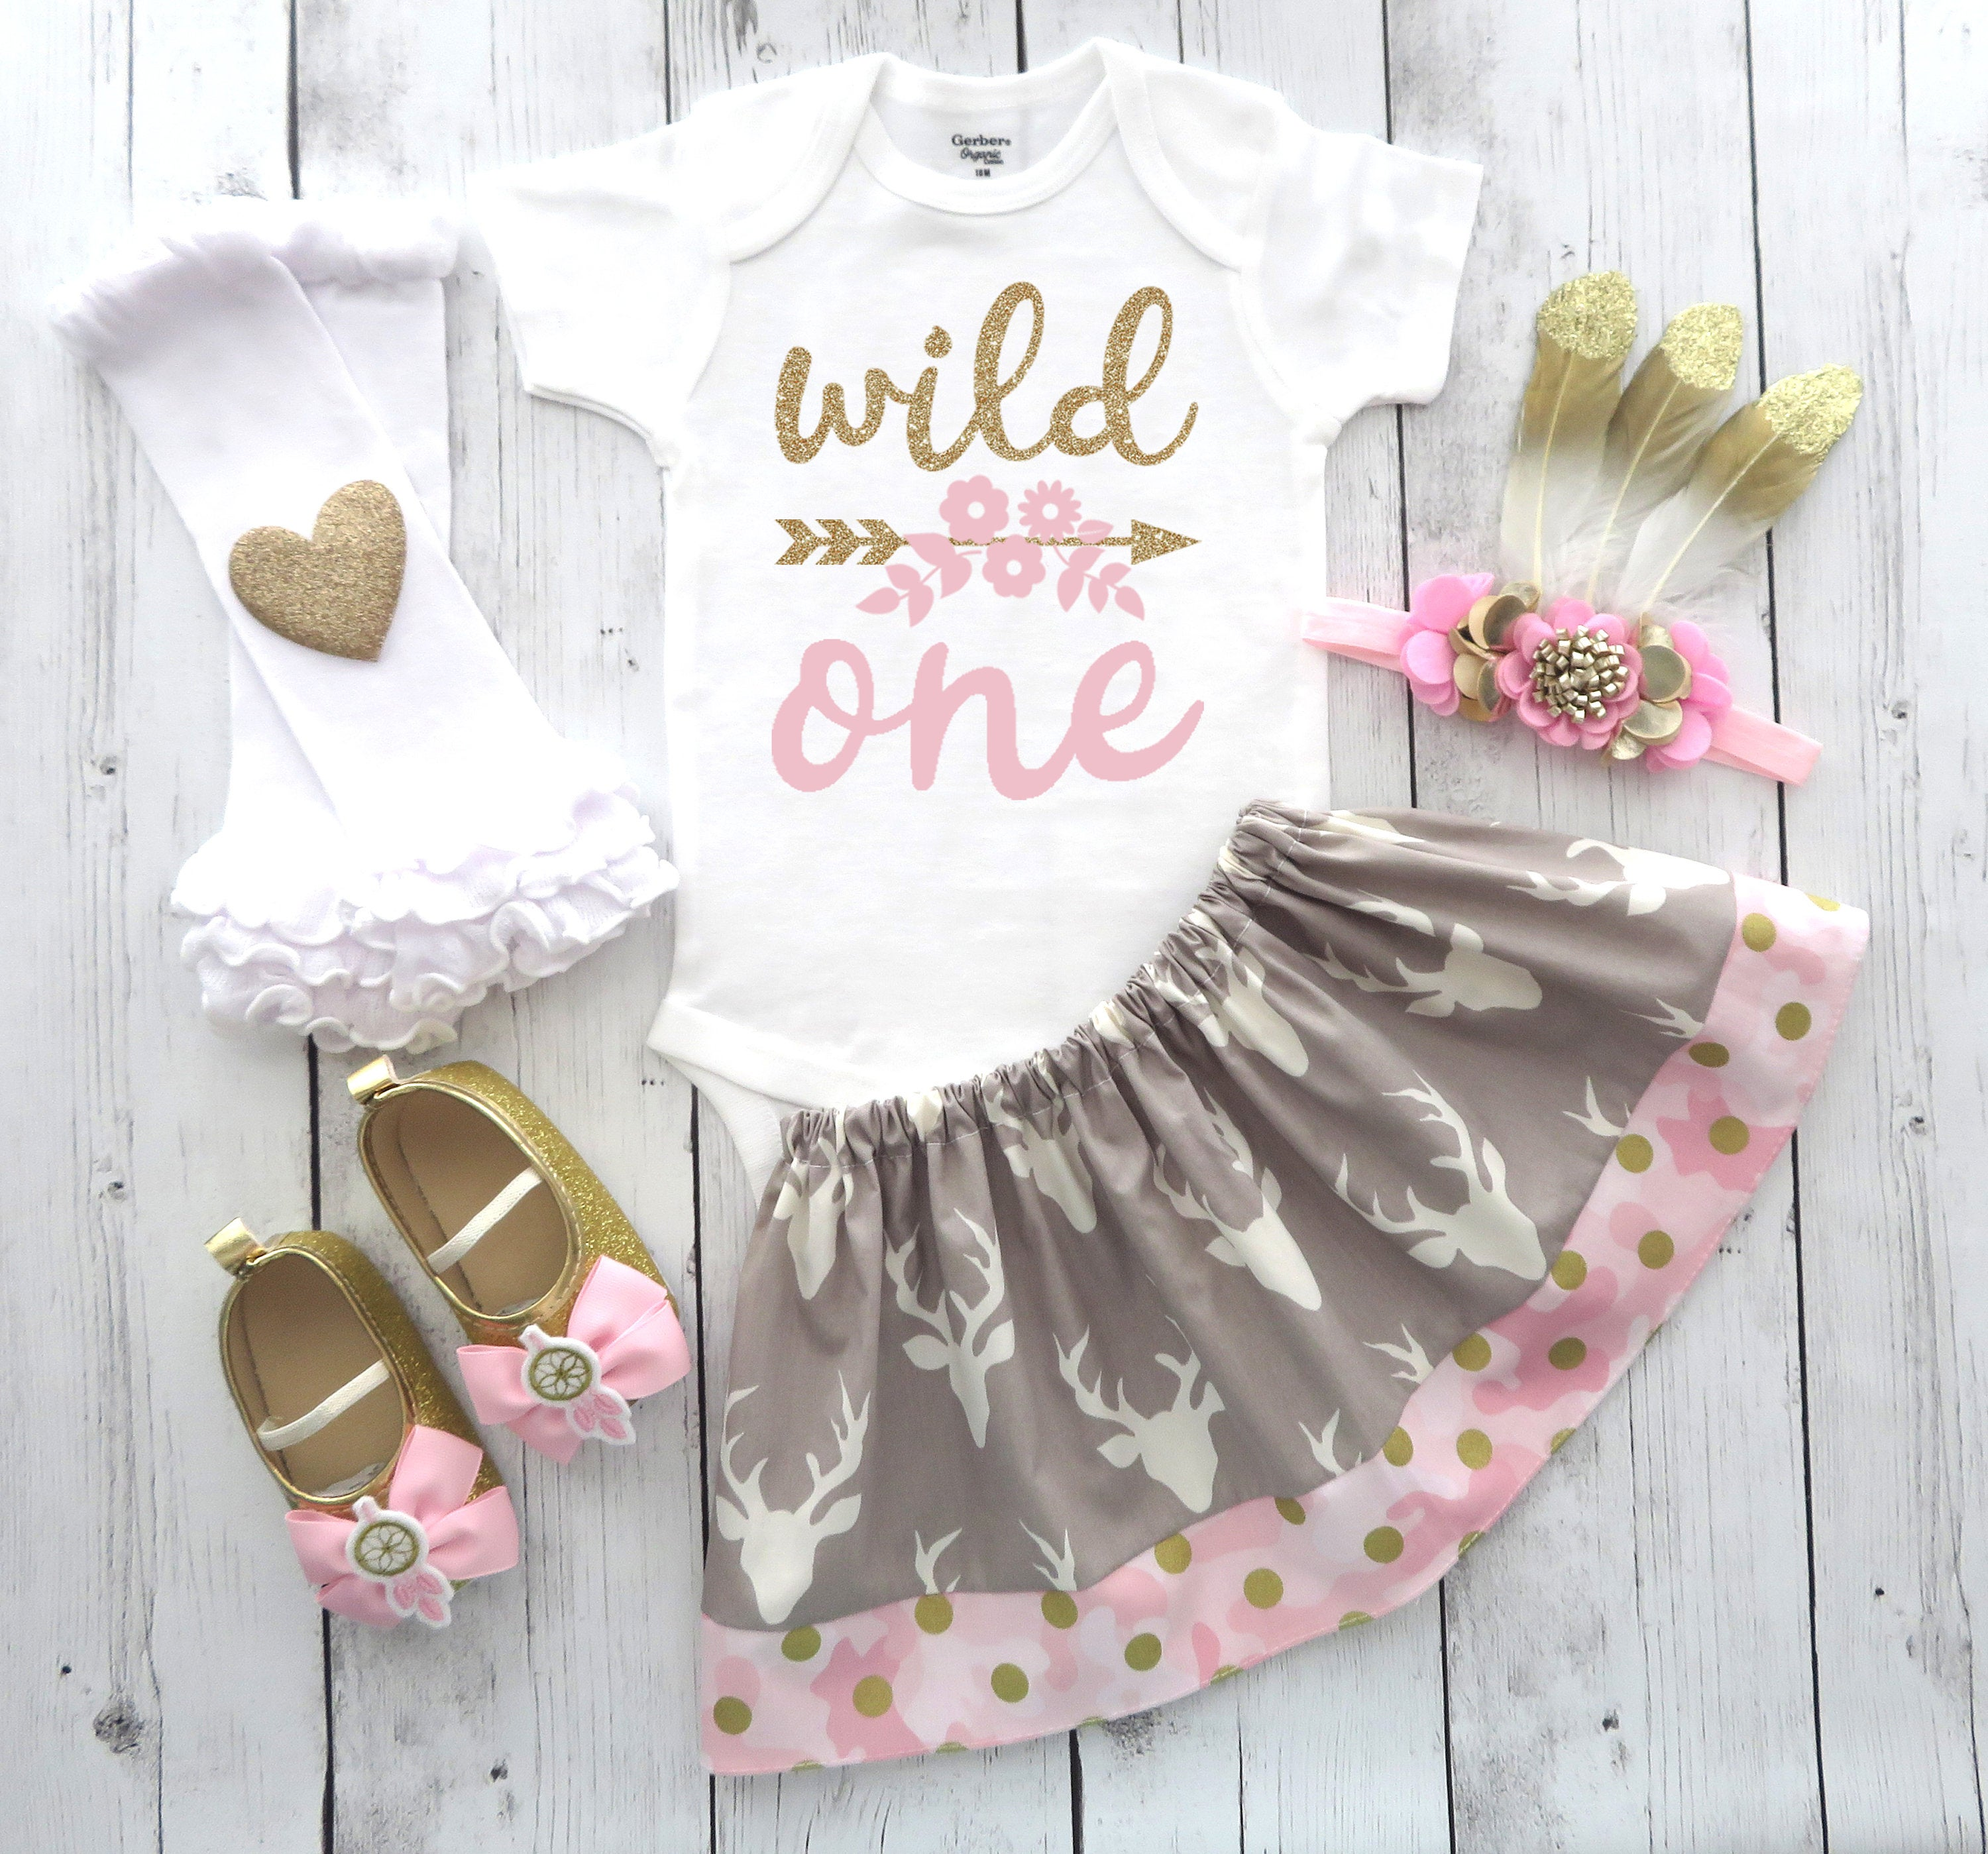 Deer First Birthday Outfit in Pink and Gold Glamo - deer camo dress, wild one birthday outfit, feather headband, tribal, woodland creatures